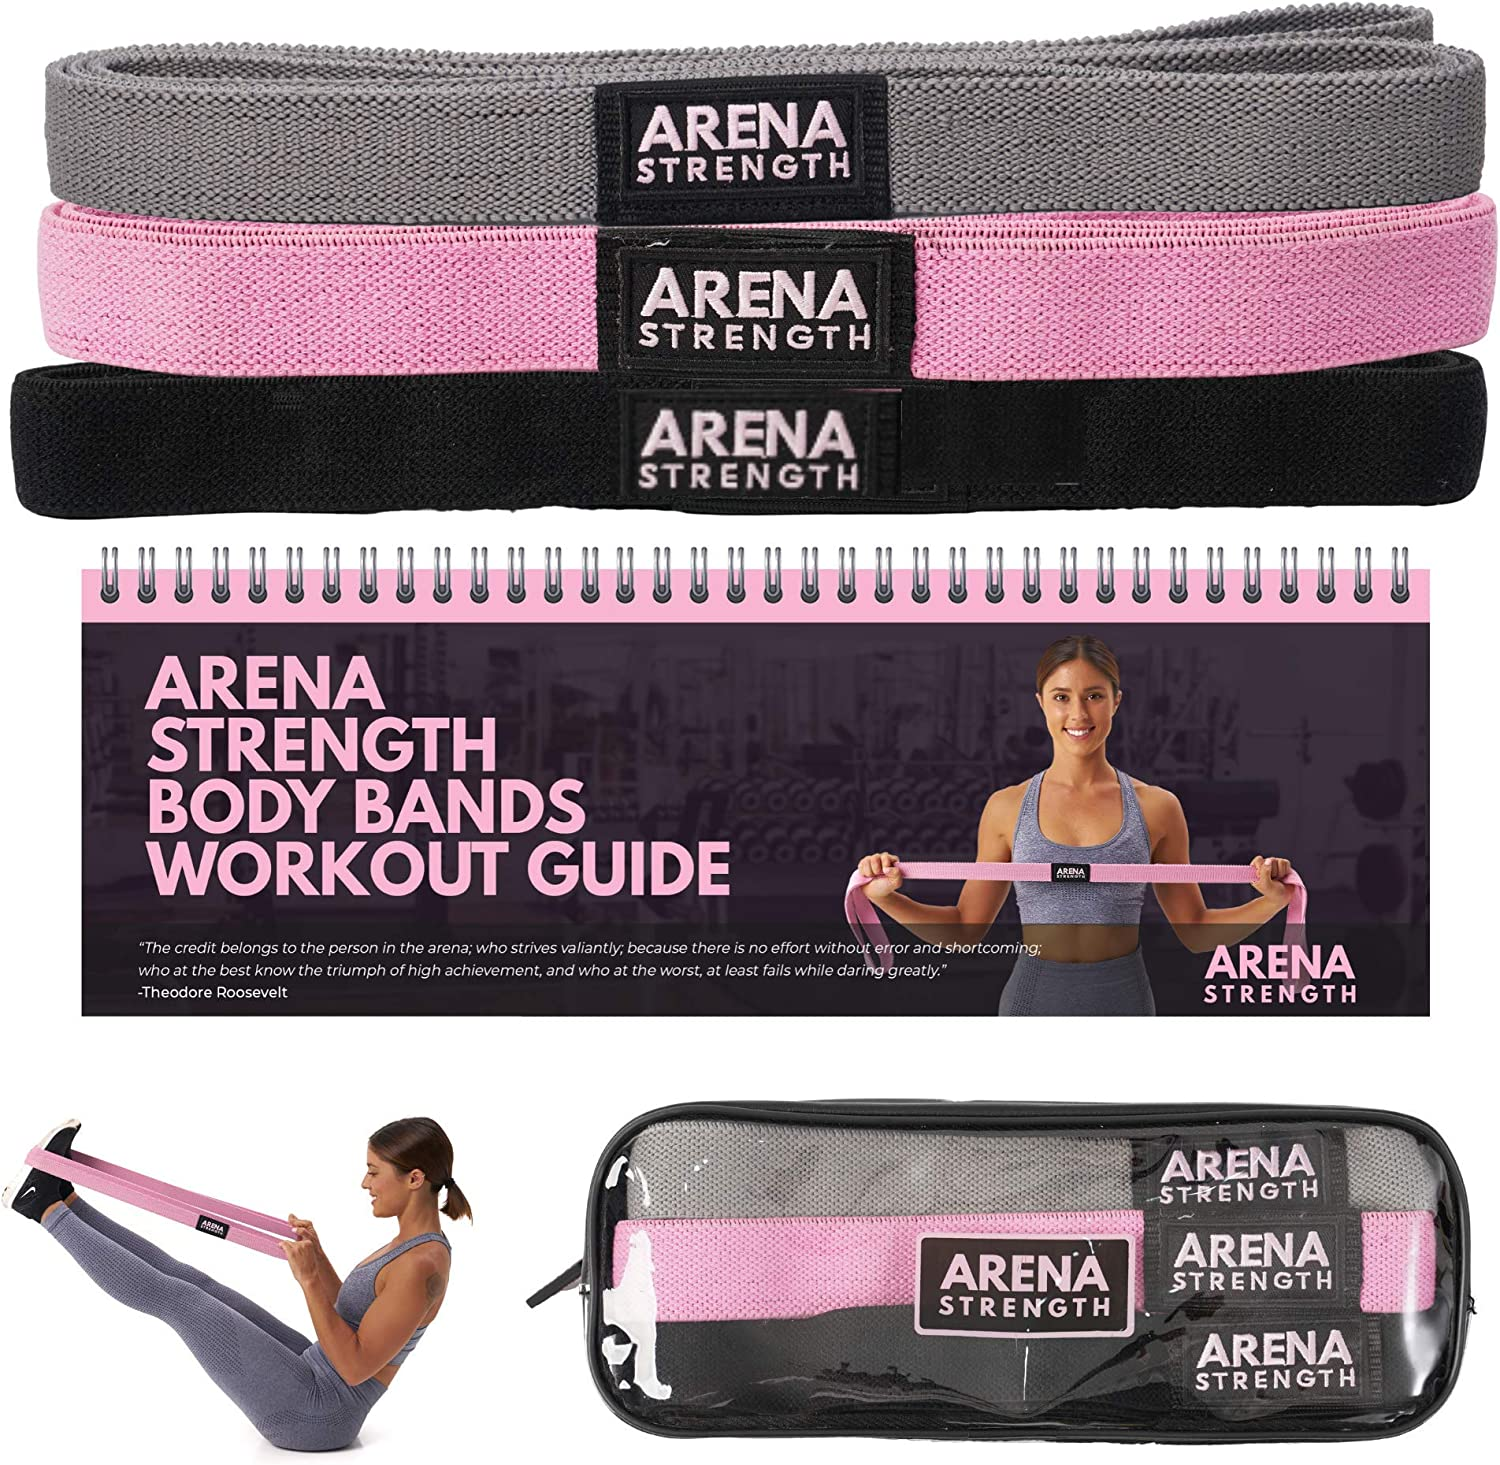 Weight Training Resistance Bands In Stock and Ready to Ship NOW Free Shipping!